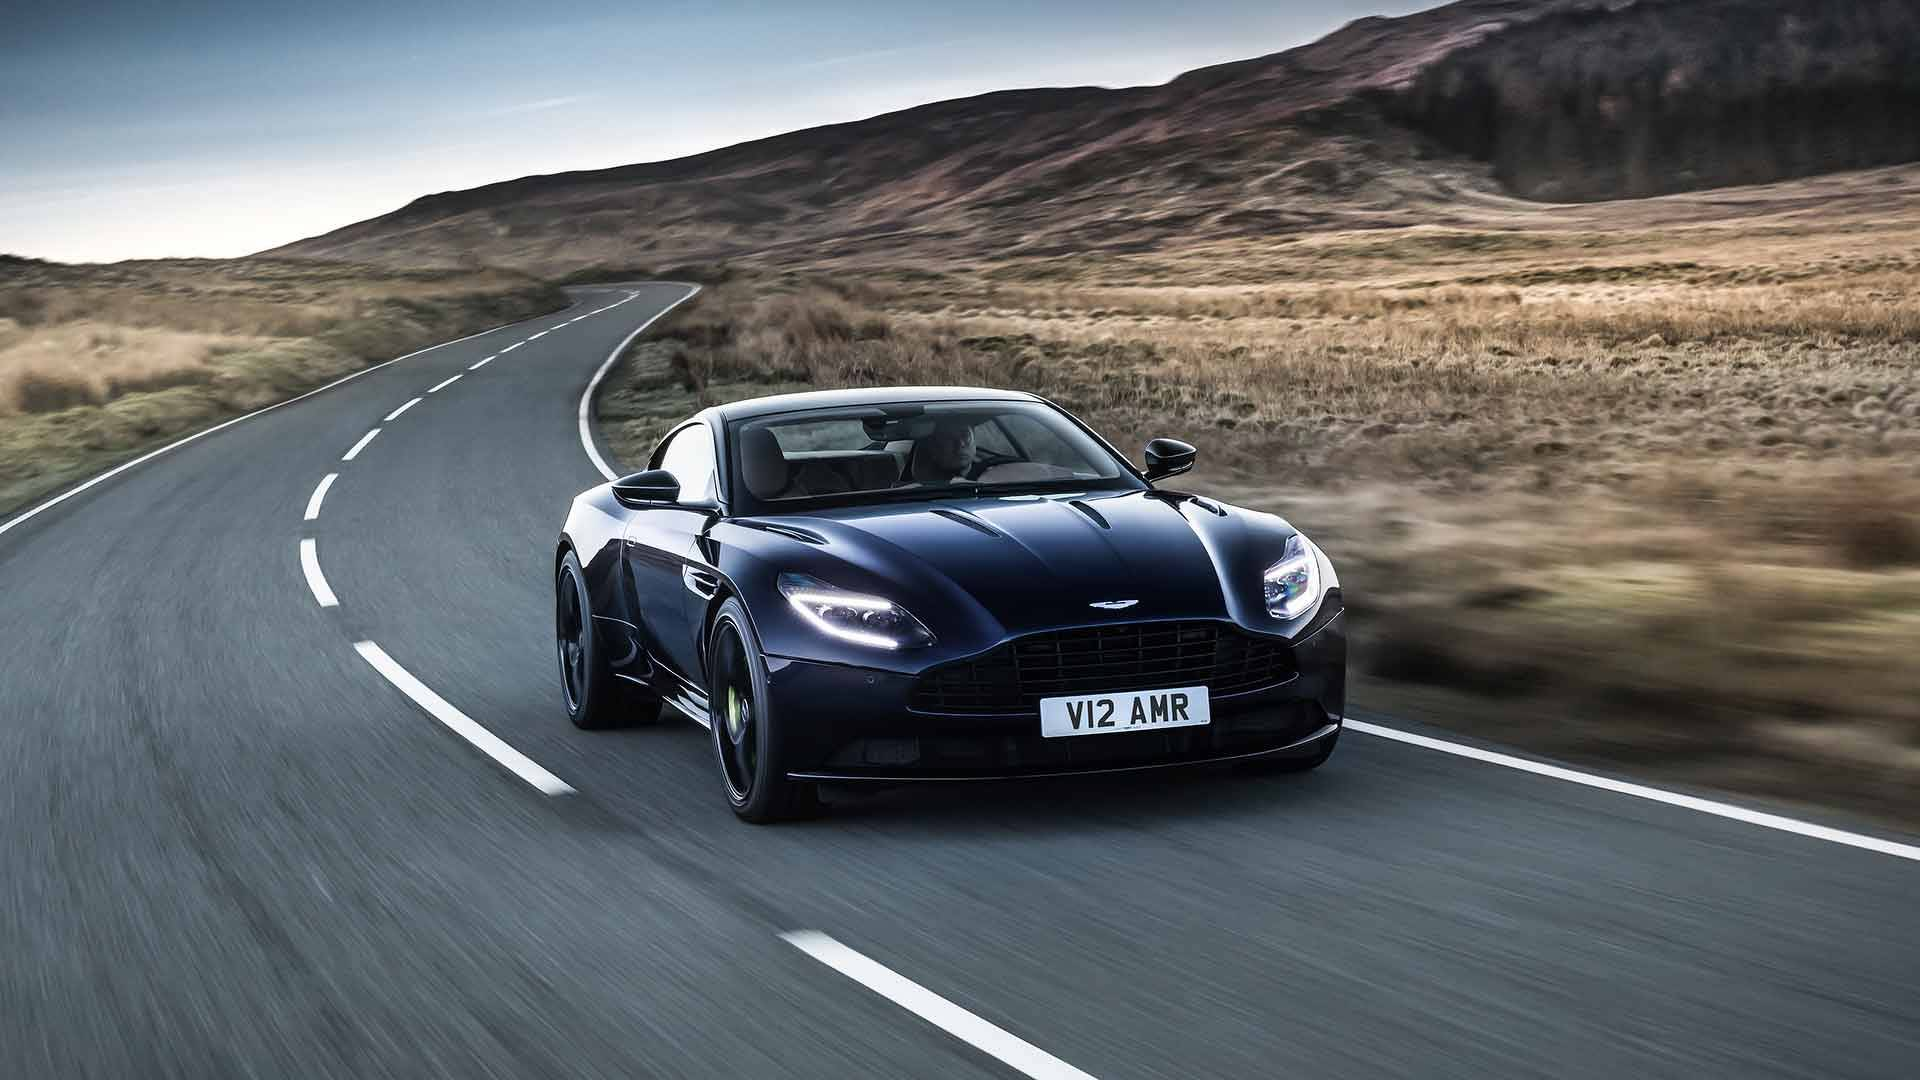 Aston Martin Db11 Amr Arrives With 630 Hp 208 Mph Top Speed